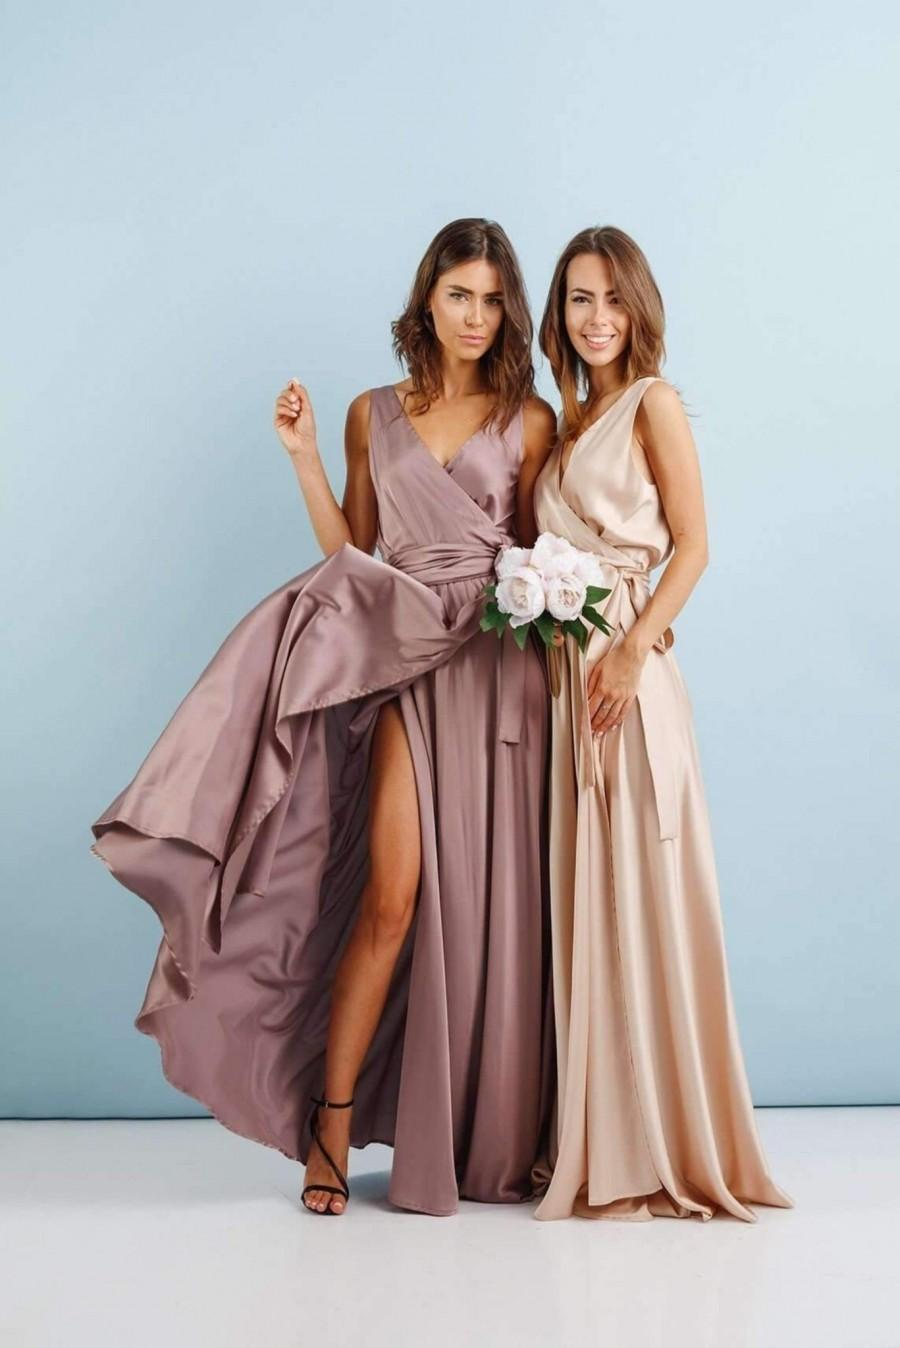 Wedding - Mauve Wrap Dress, Sleeveless Long Dress, Silk Maxi Dress, Wrap Bridesmaid Gown, Bridesmaid Wrap Dress, Bridesmaid Maxi Dress